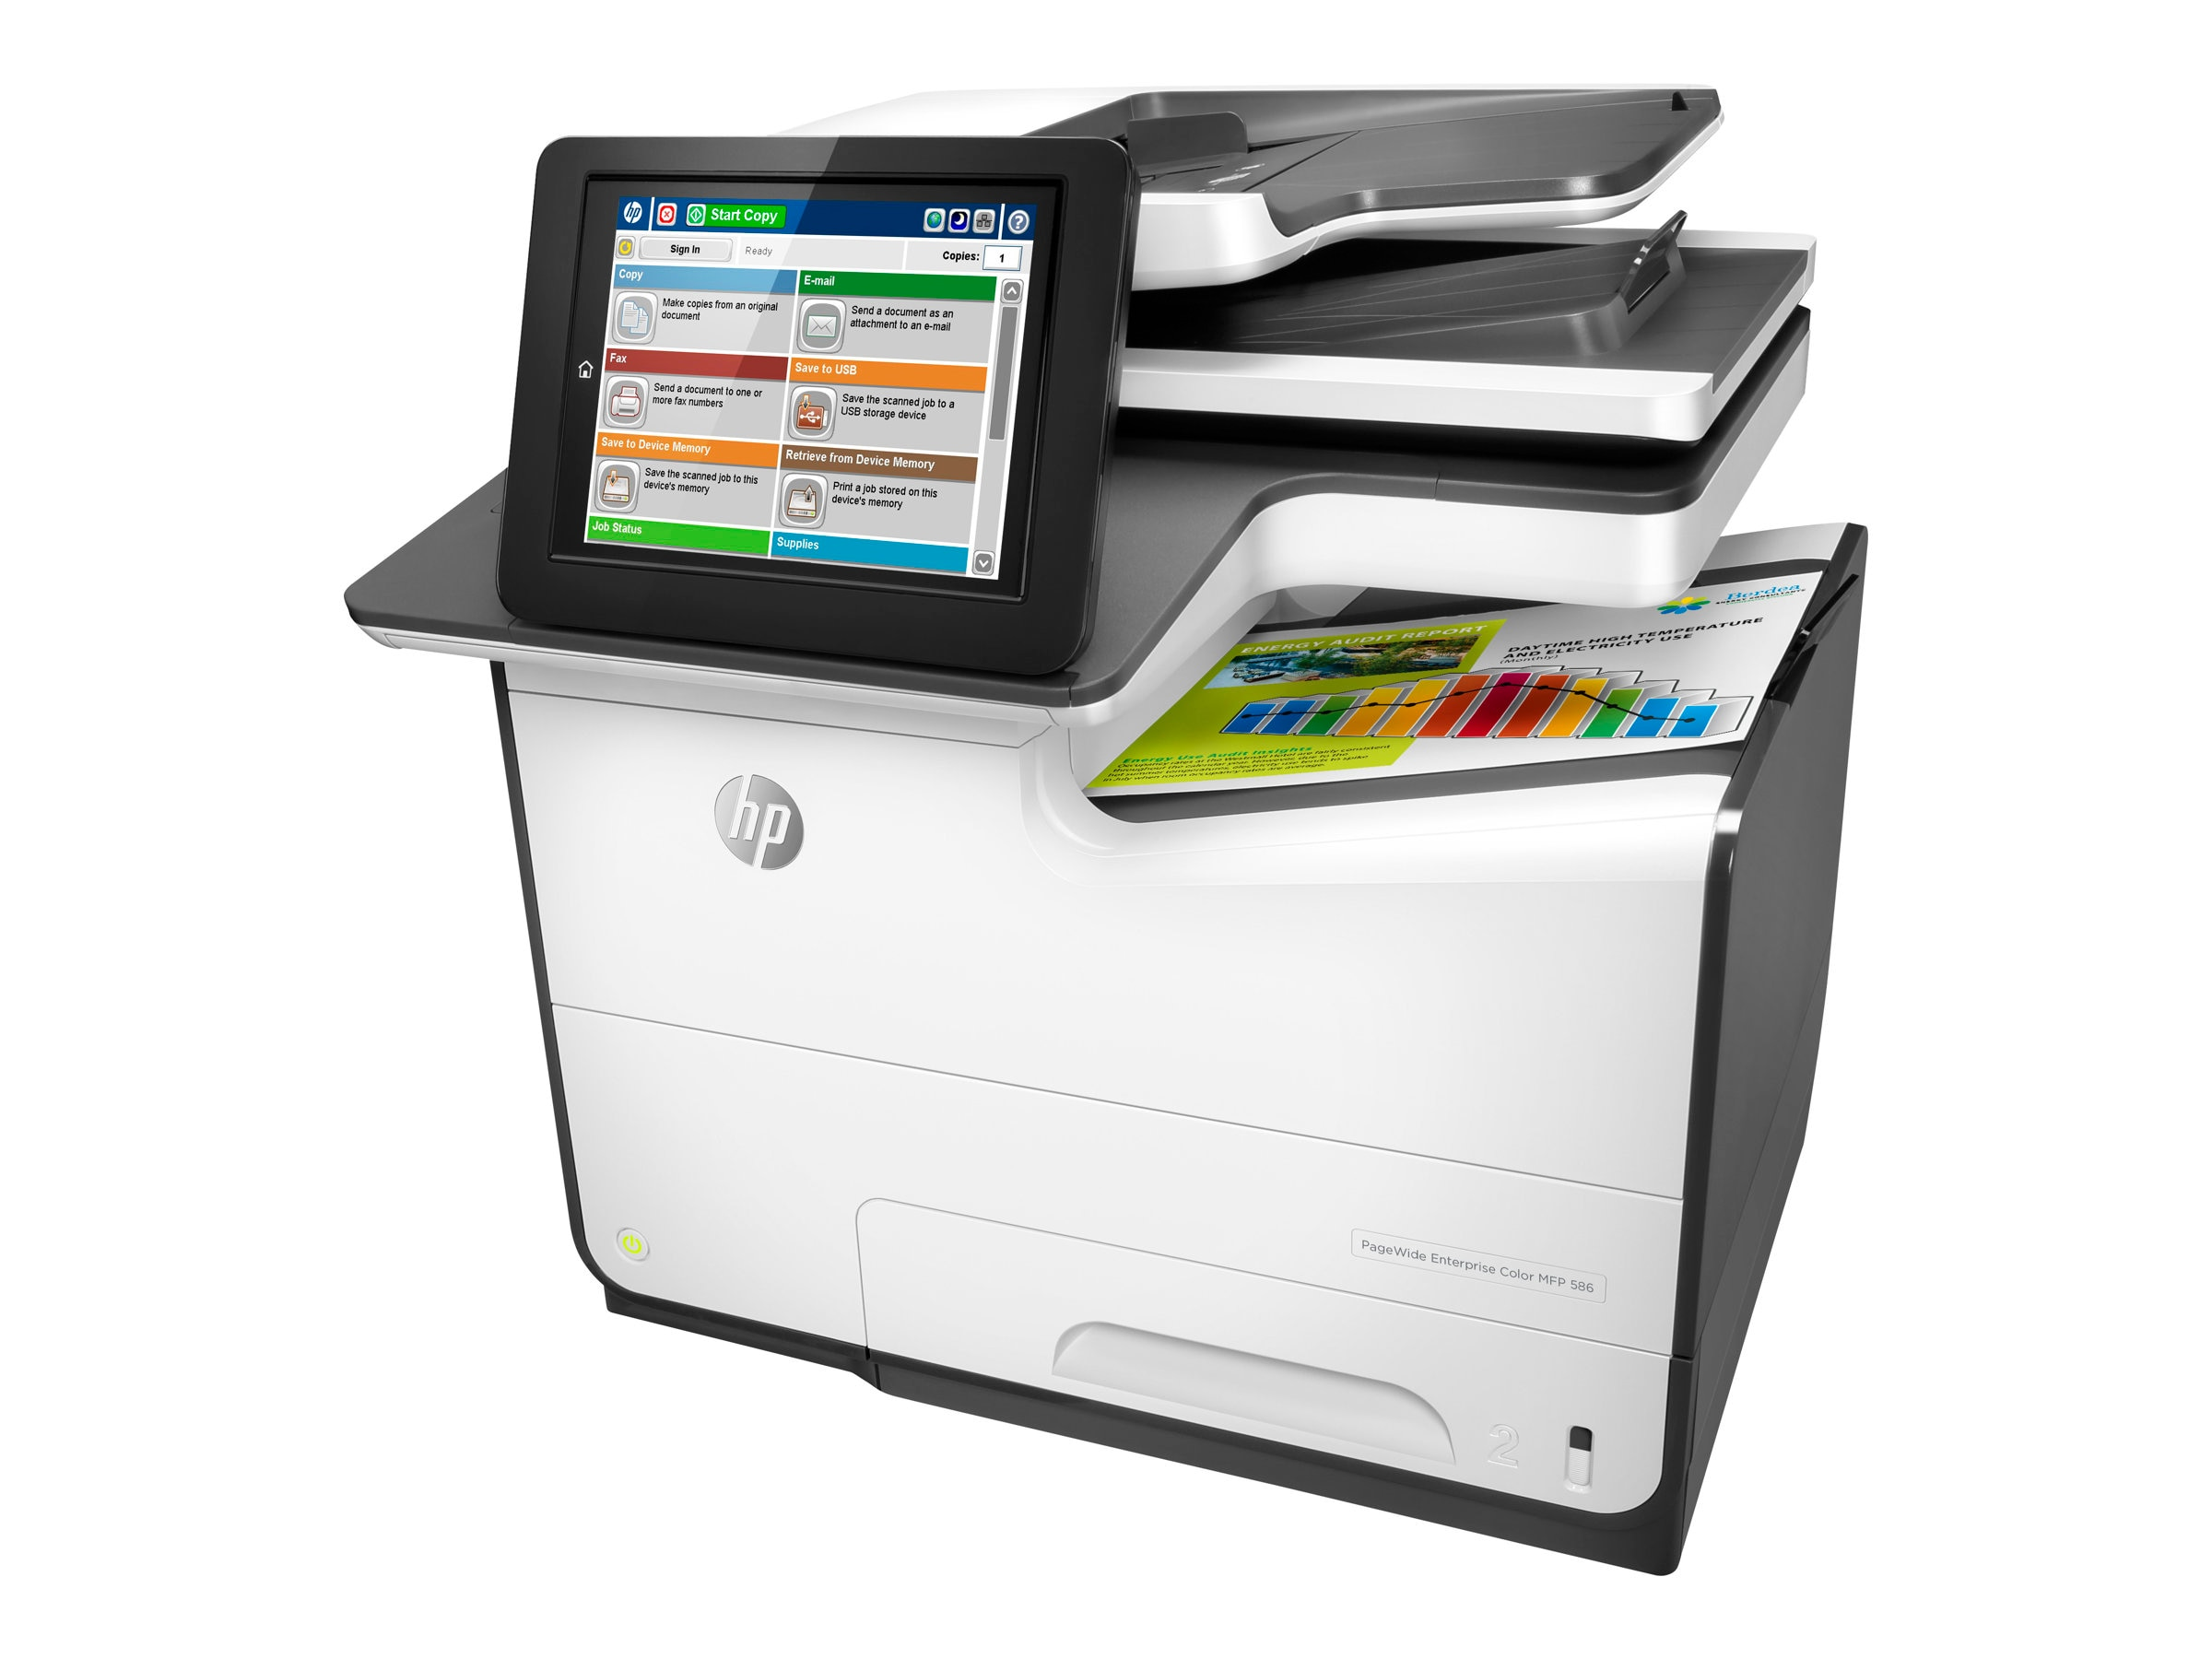 HP PageWide Enterprise Color MFP 586f ($2,299 - $690 Instant Rebate = $1,609 Expires 10 31)